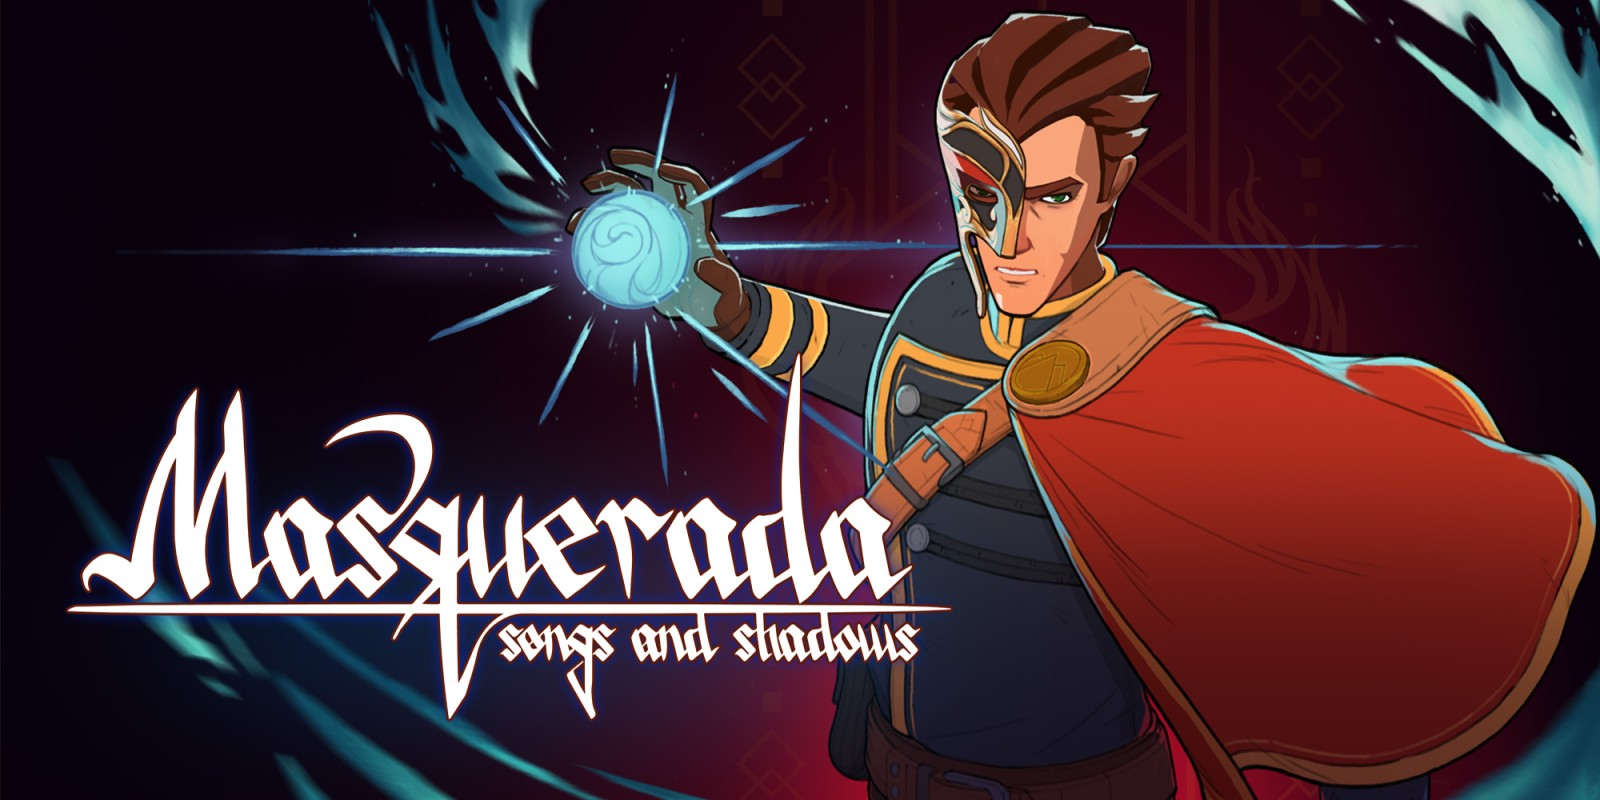 Masquerada: Songs And Shadows Now On Switch!